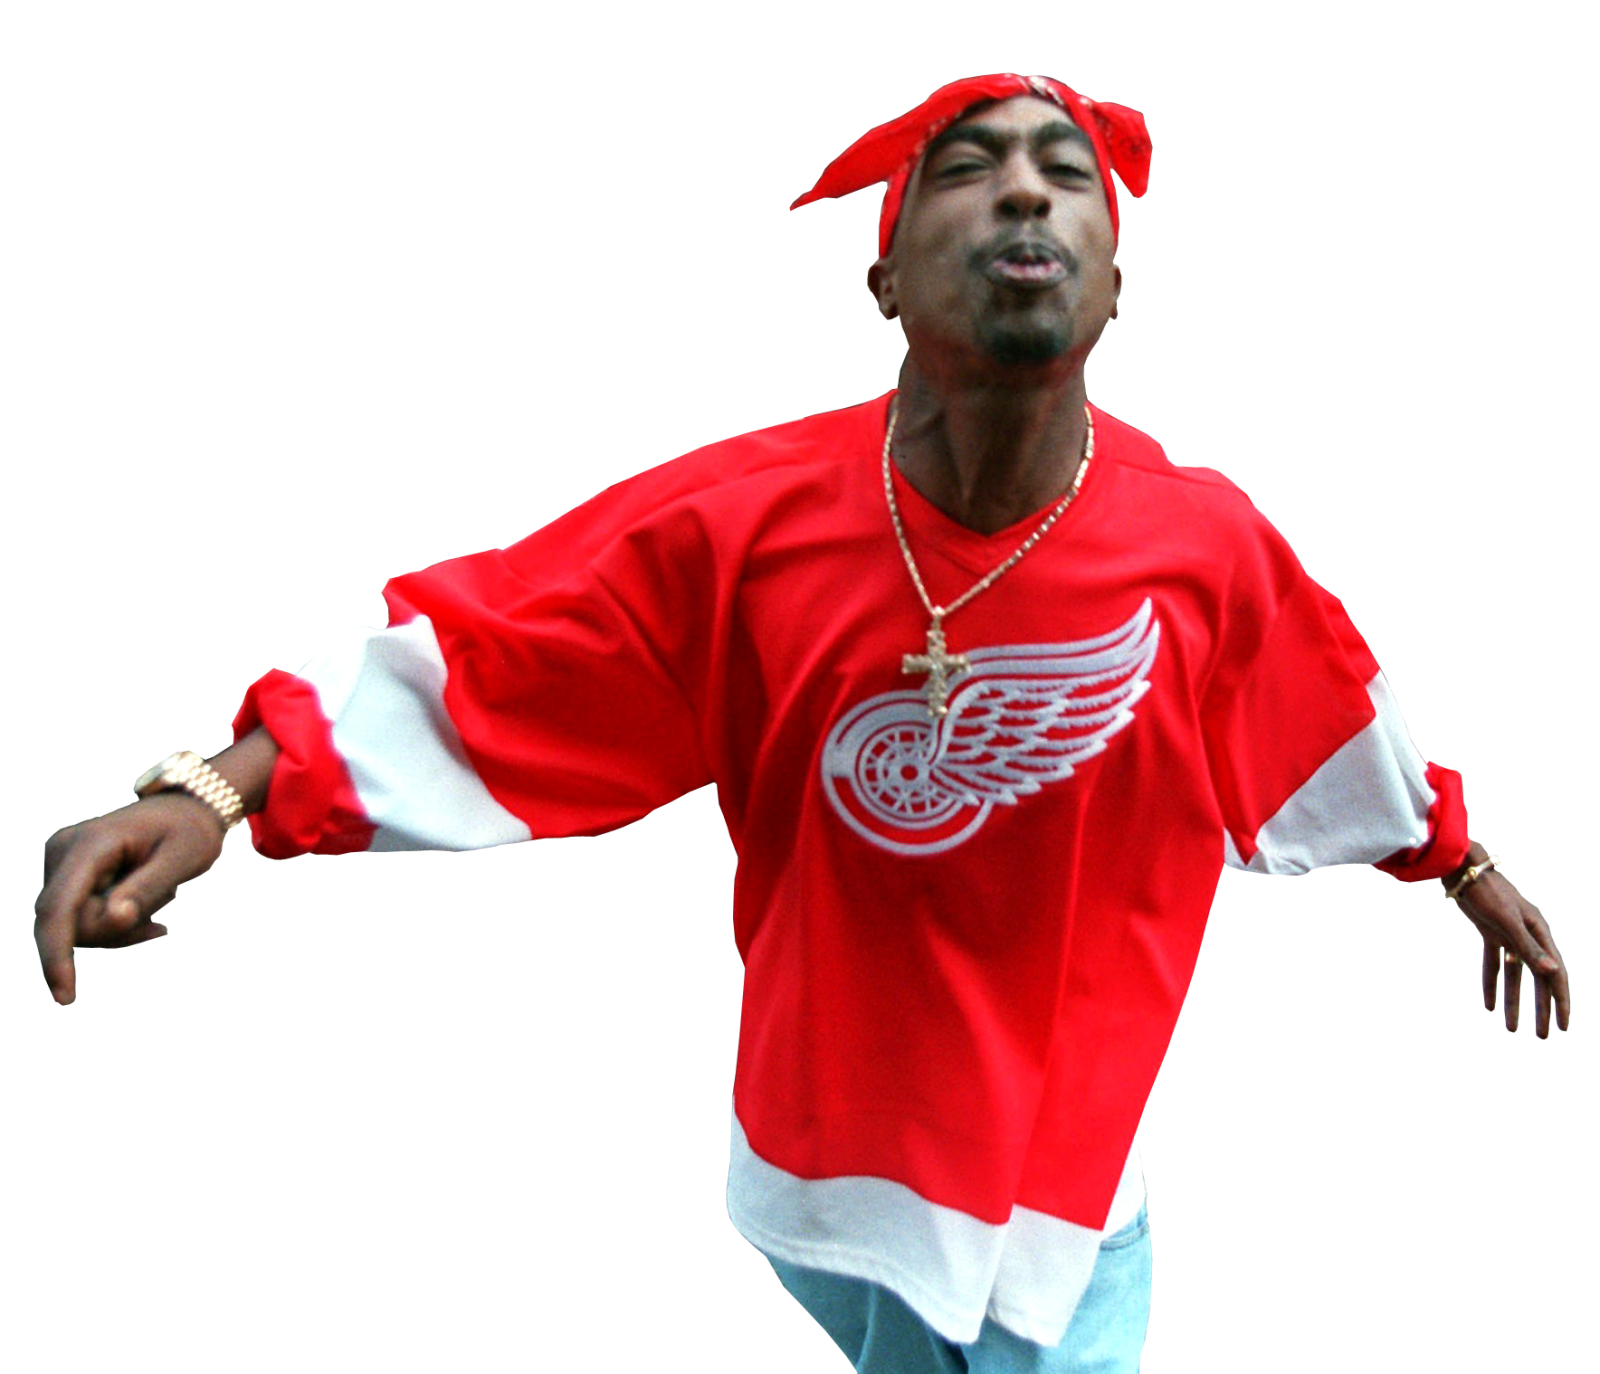 Download 2pac Png Image For Free